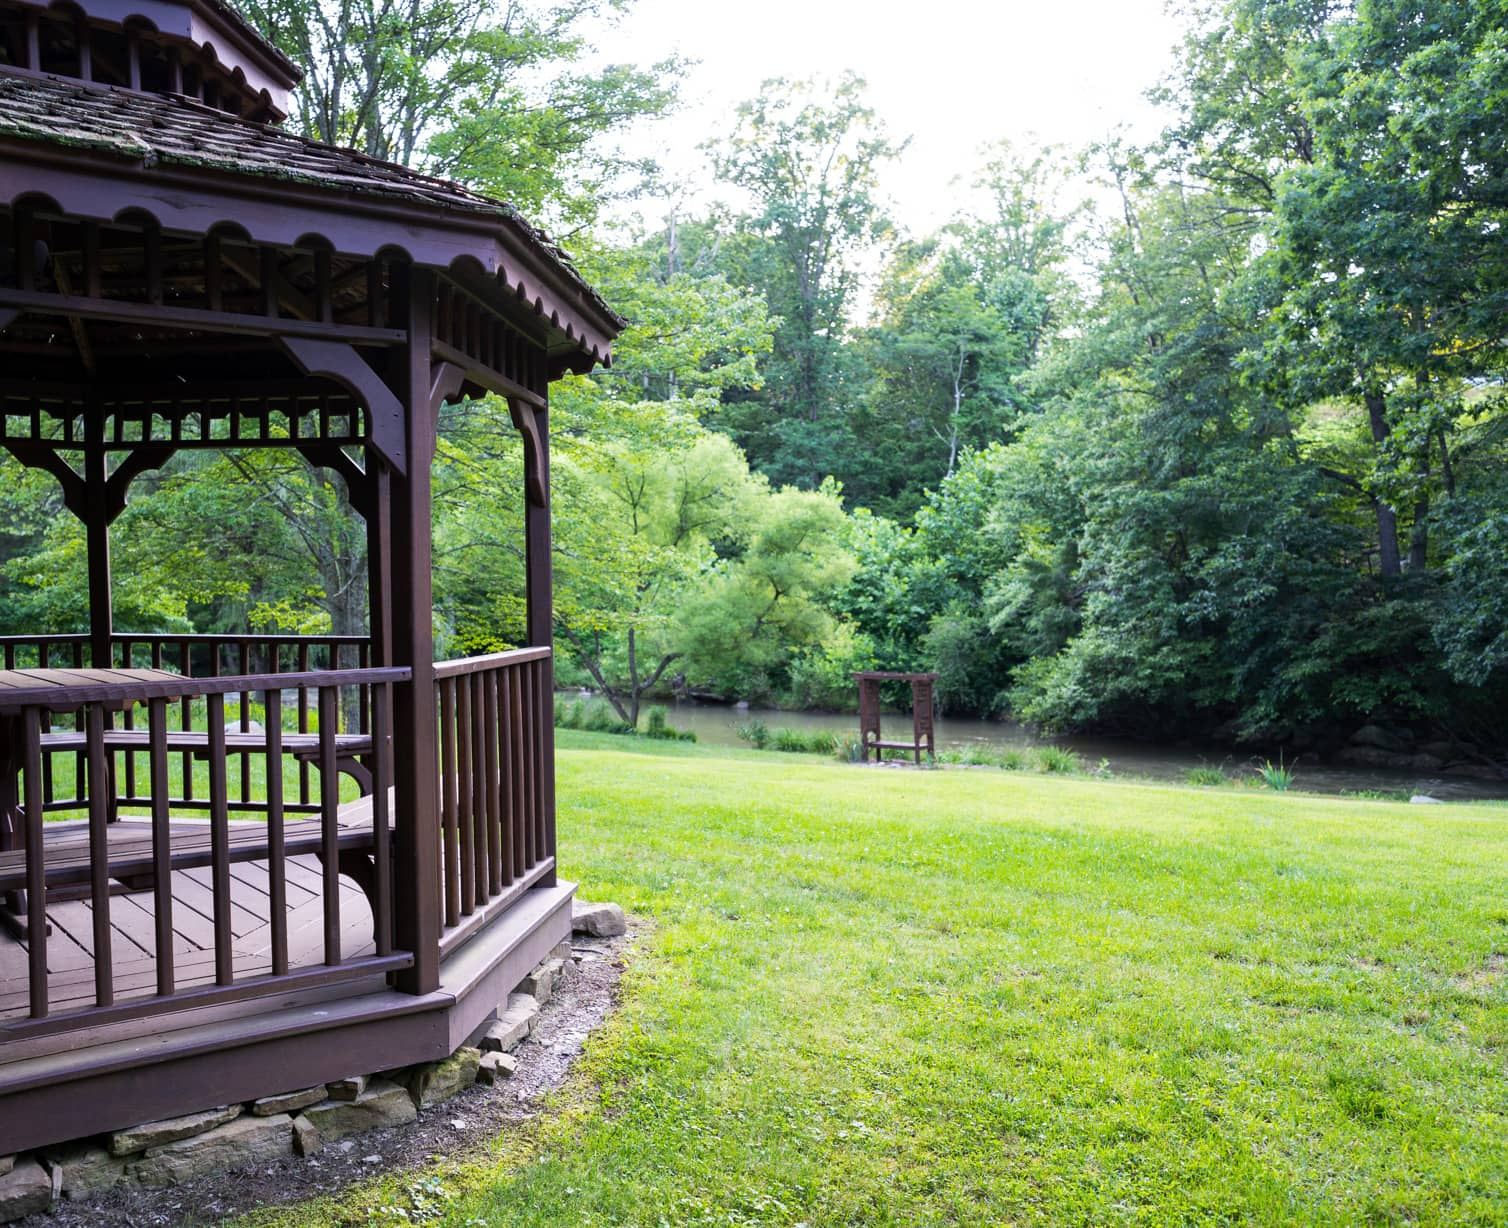 A wooden gazebo overlooking a creek